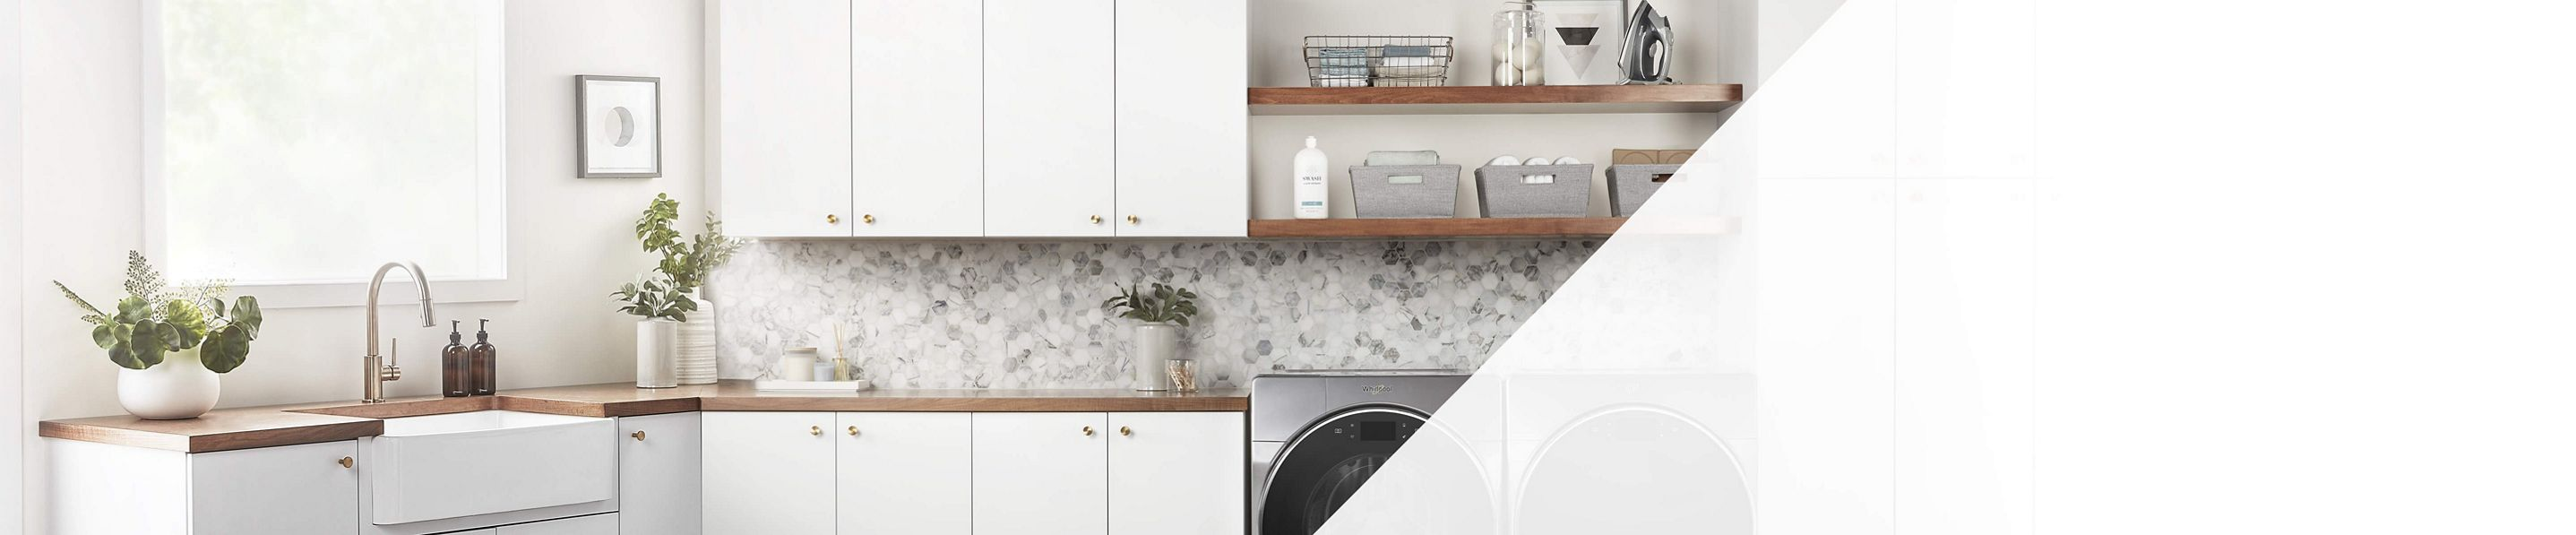 A large laundry room with white cabinets and wooden shelves with silver front loading washer and dryer